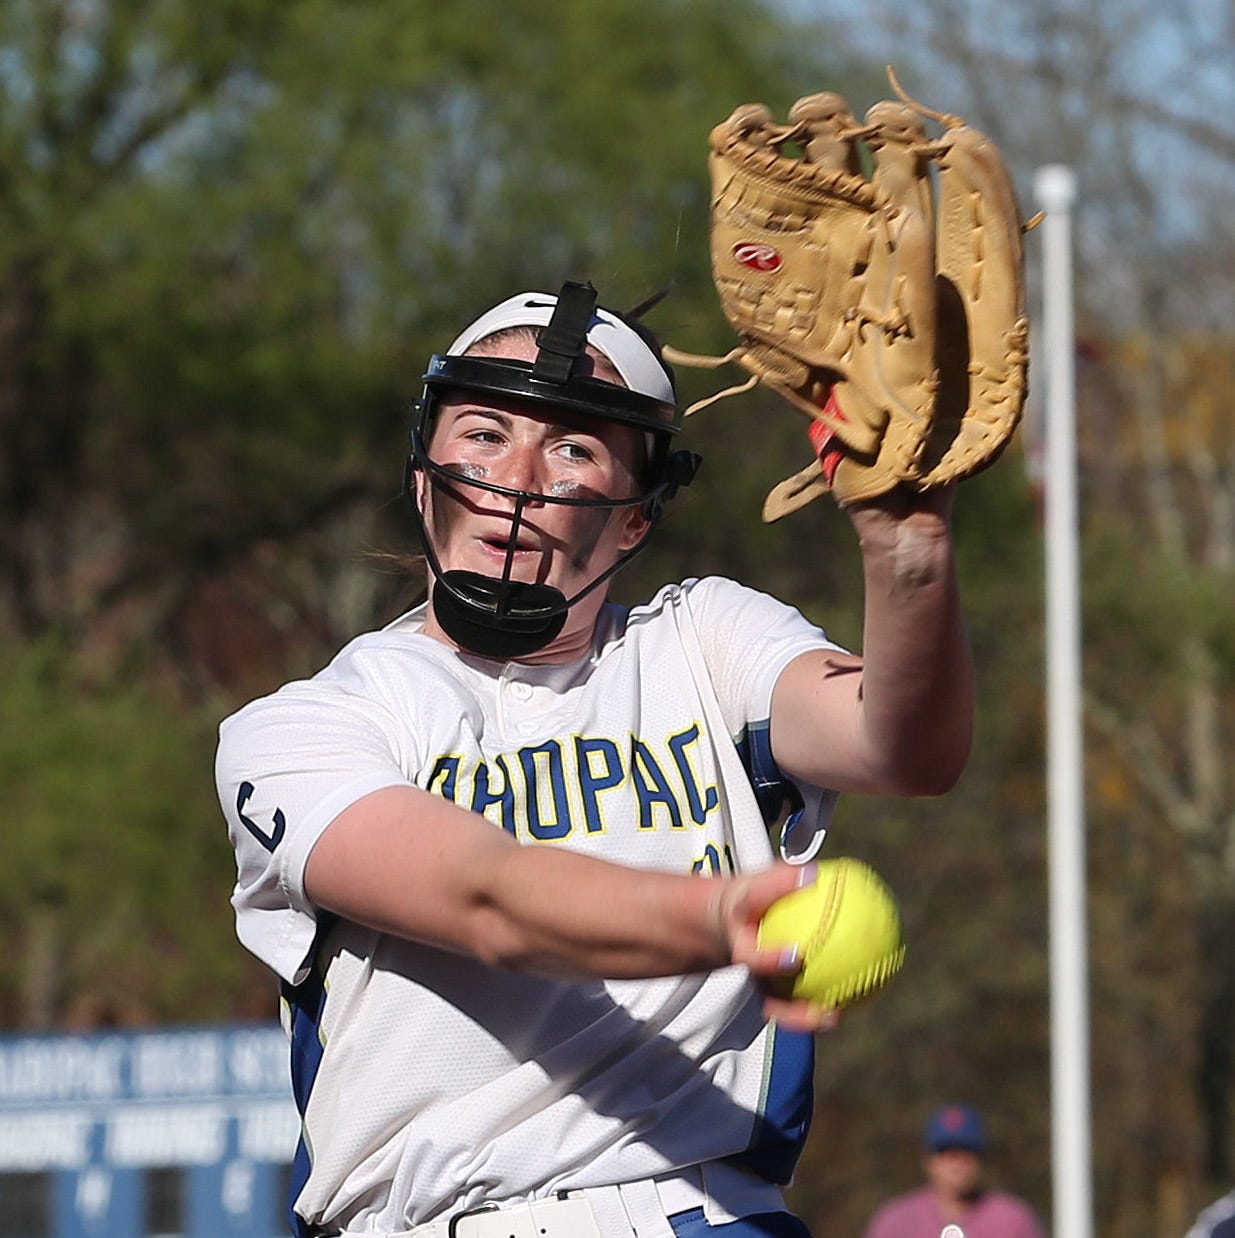 Softball: Mahopac ace Shannon Becker tosses 'perfect' perfect game with 21 strikeouts